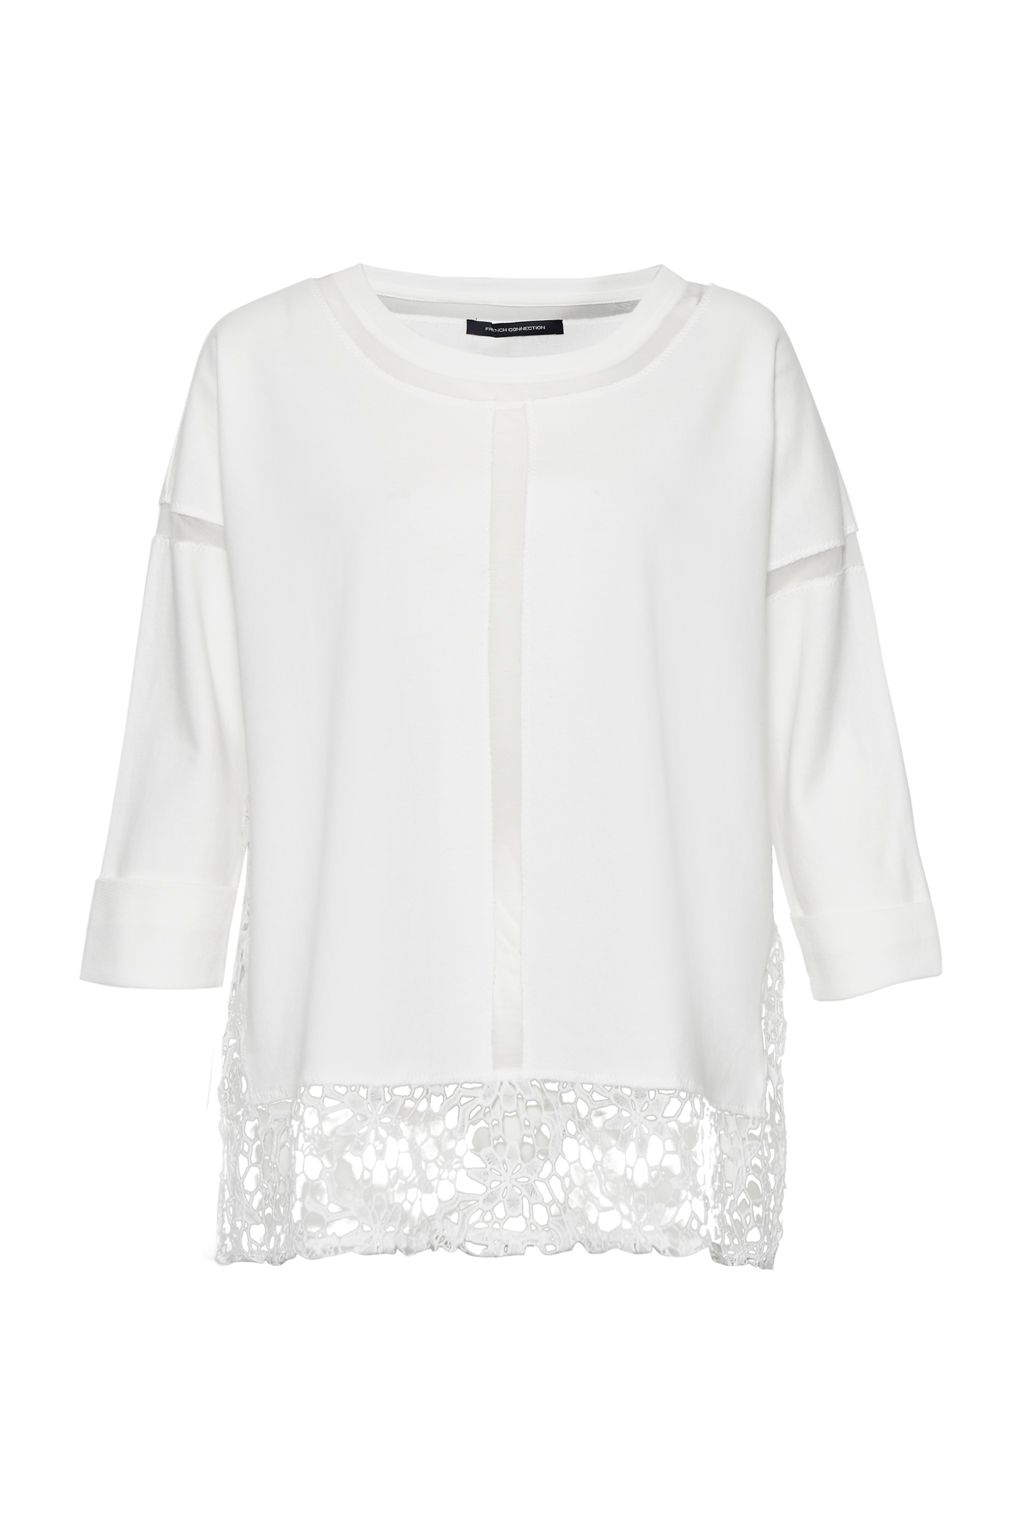 French Connection Noland Mesh Panelled Lace Top, White